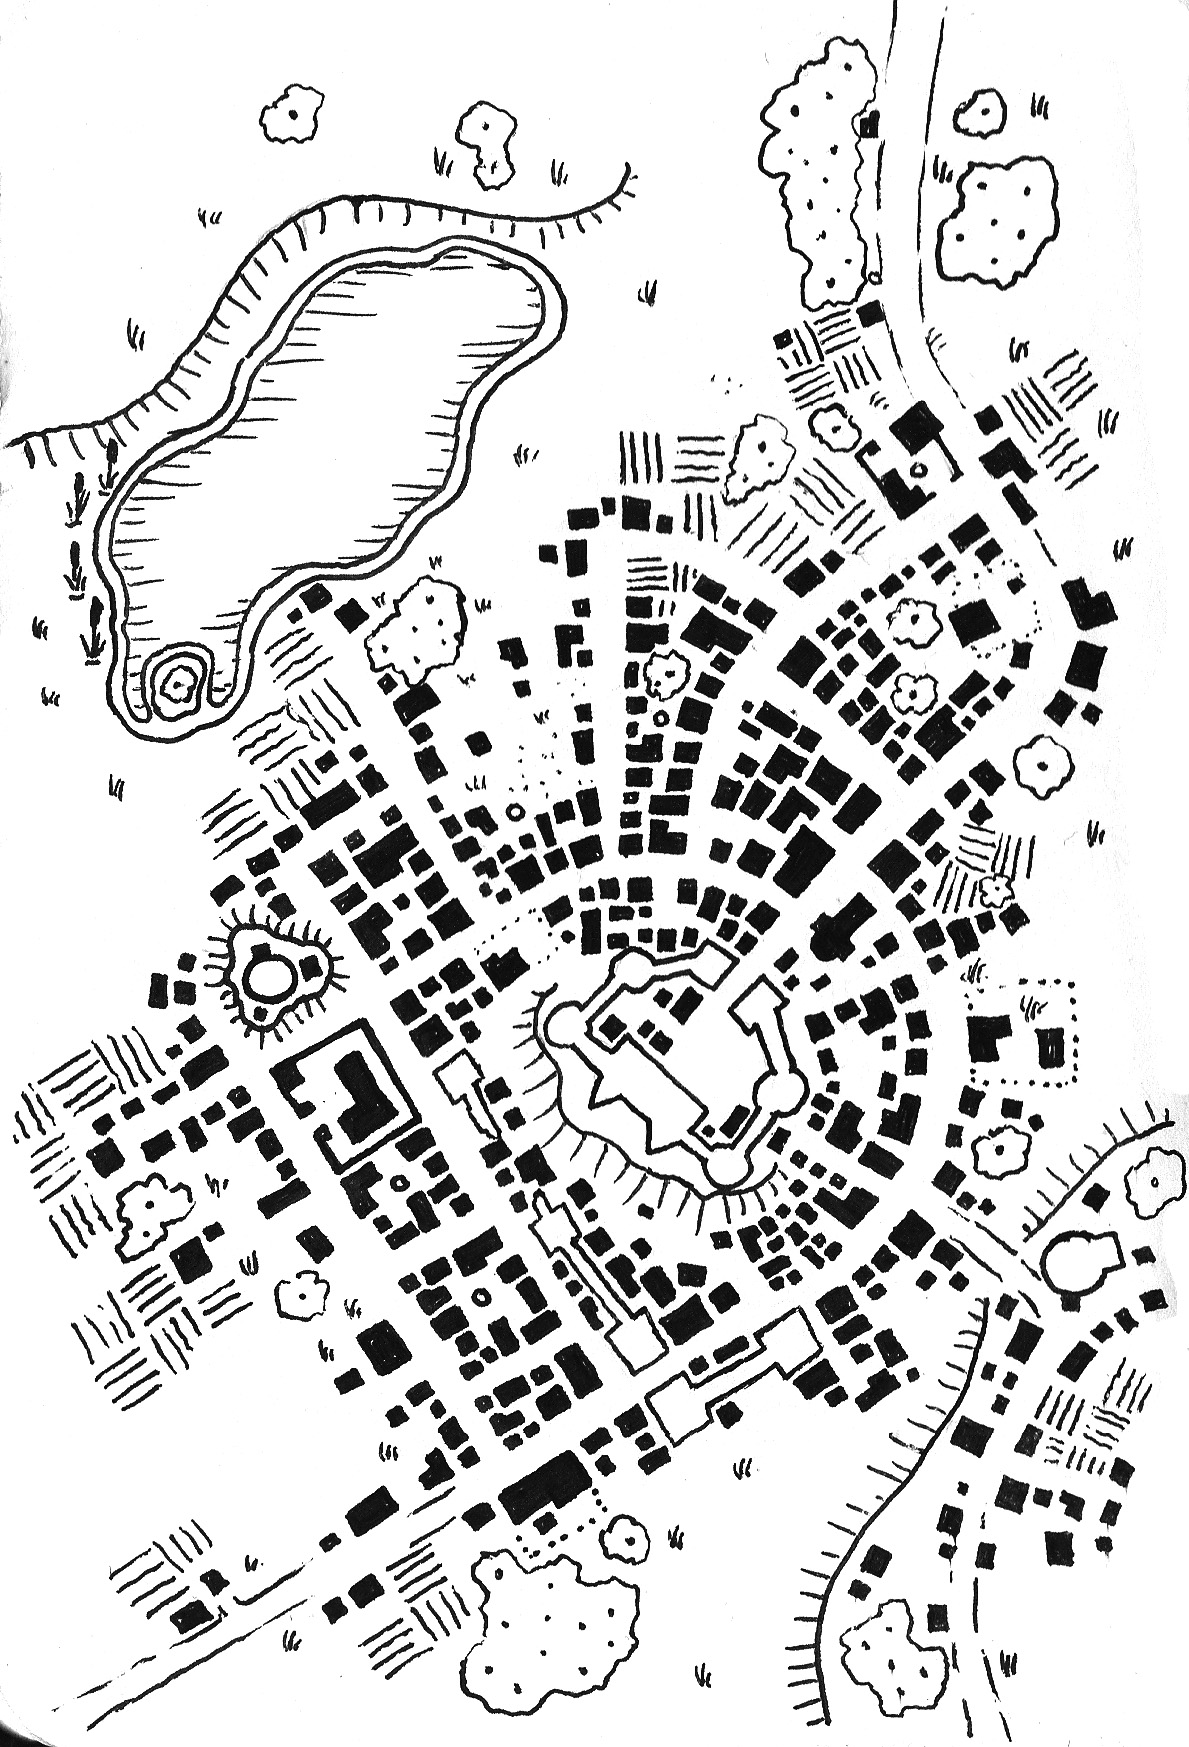 1189x1747 Tuesday Map] The City Of Springhollow Dyson's Dodecahedron